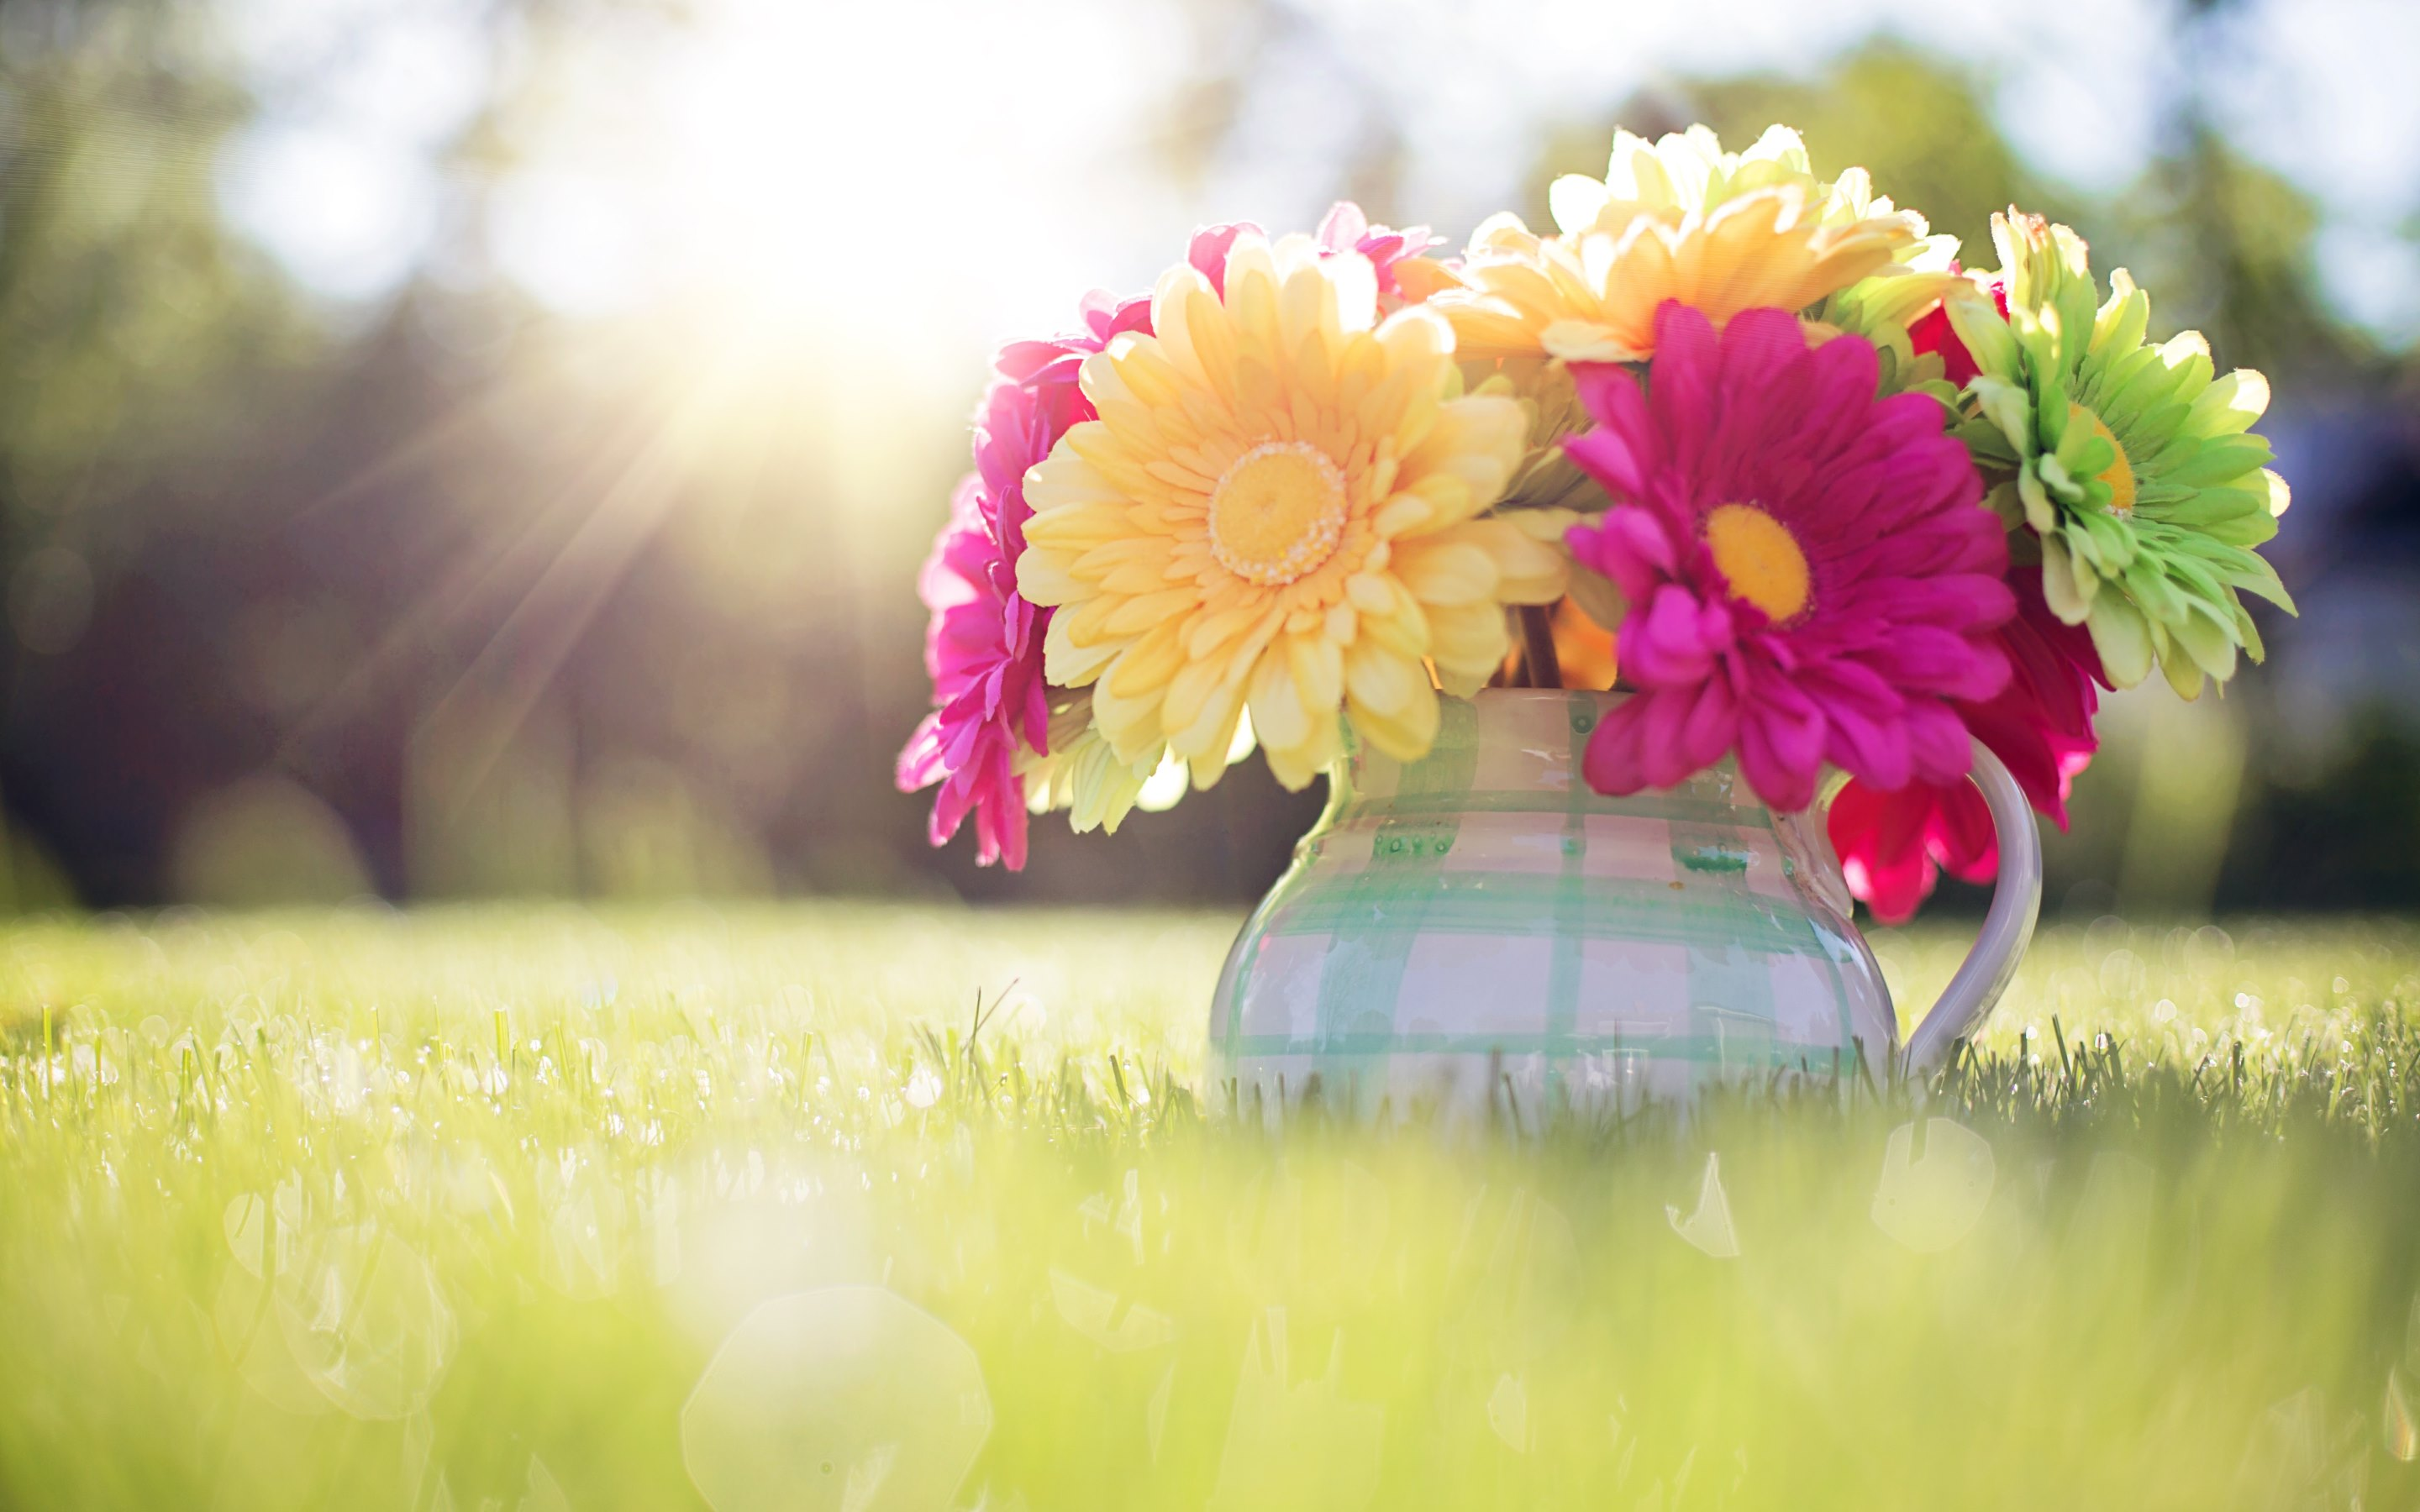 Spring HD Wallpapers 183 4K 2880x1800